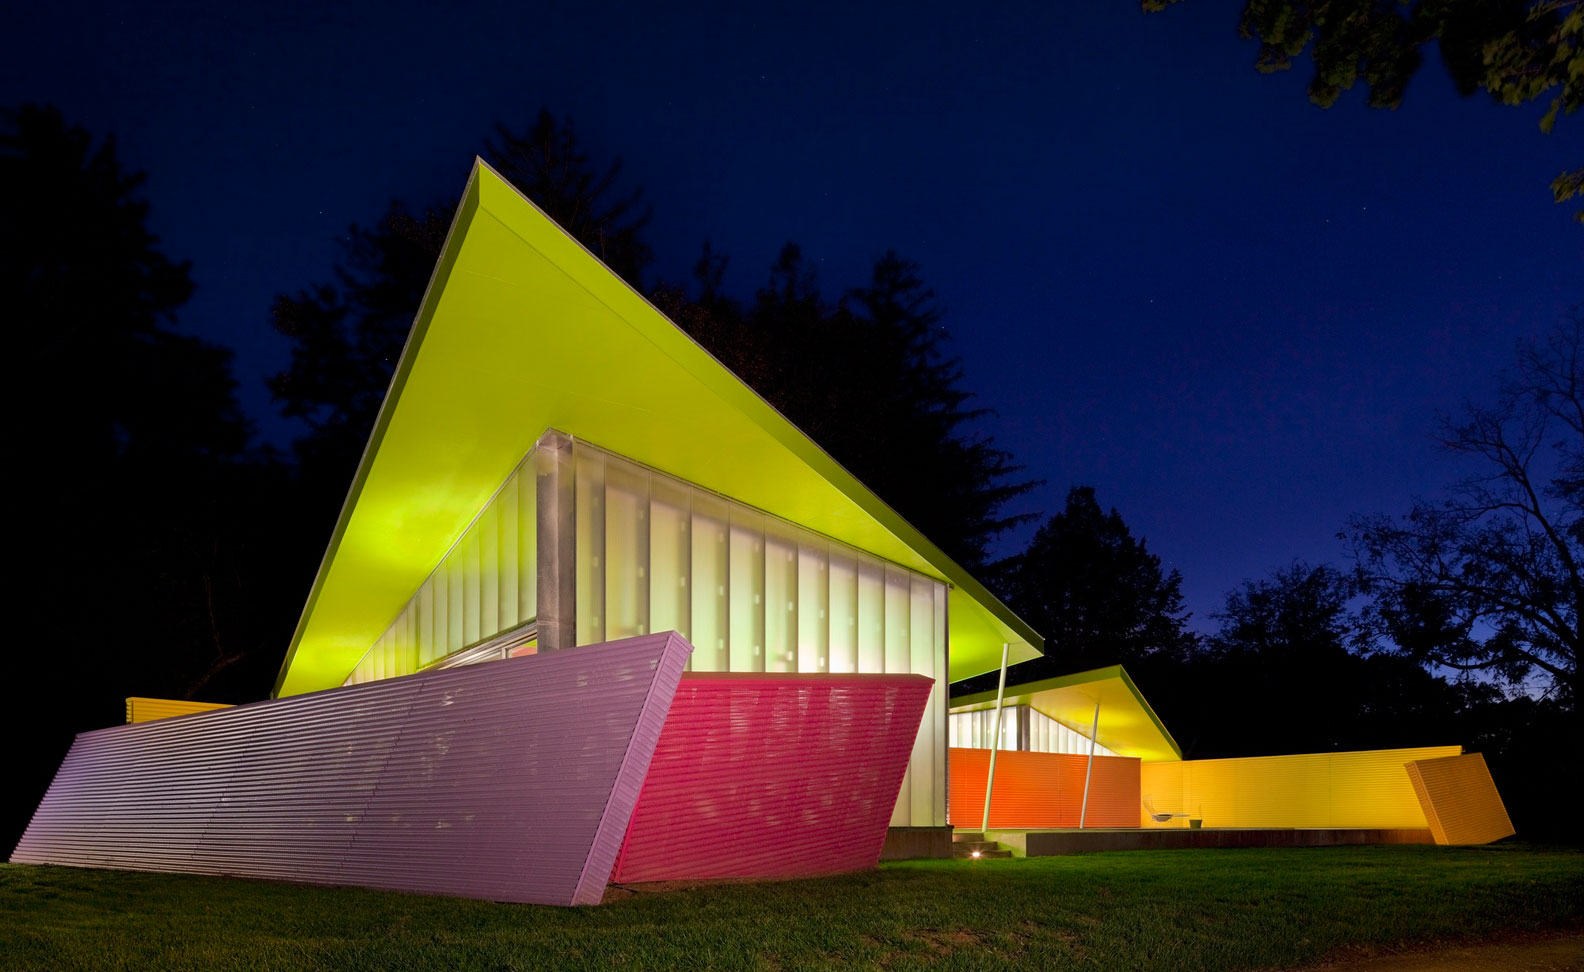 Beautiful angles and bold colors: a unique design